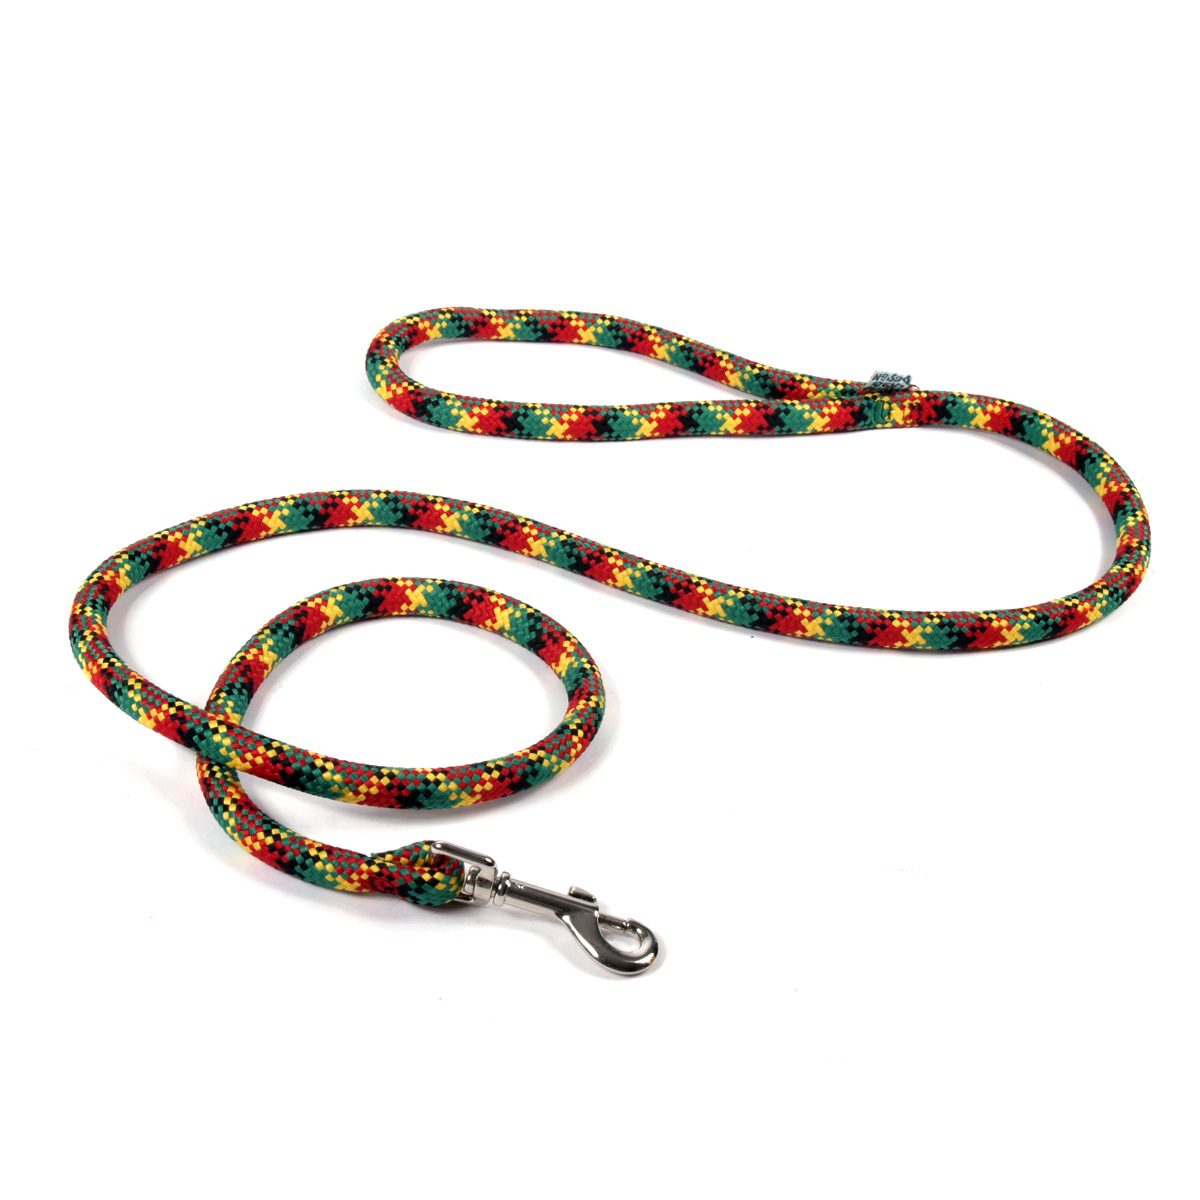 Round Braided Rasta Colors Rope Lead